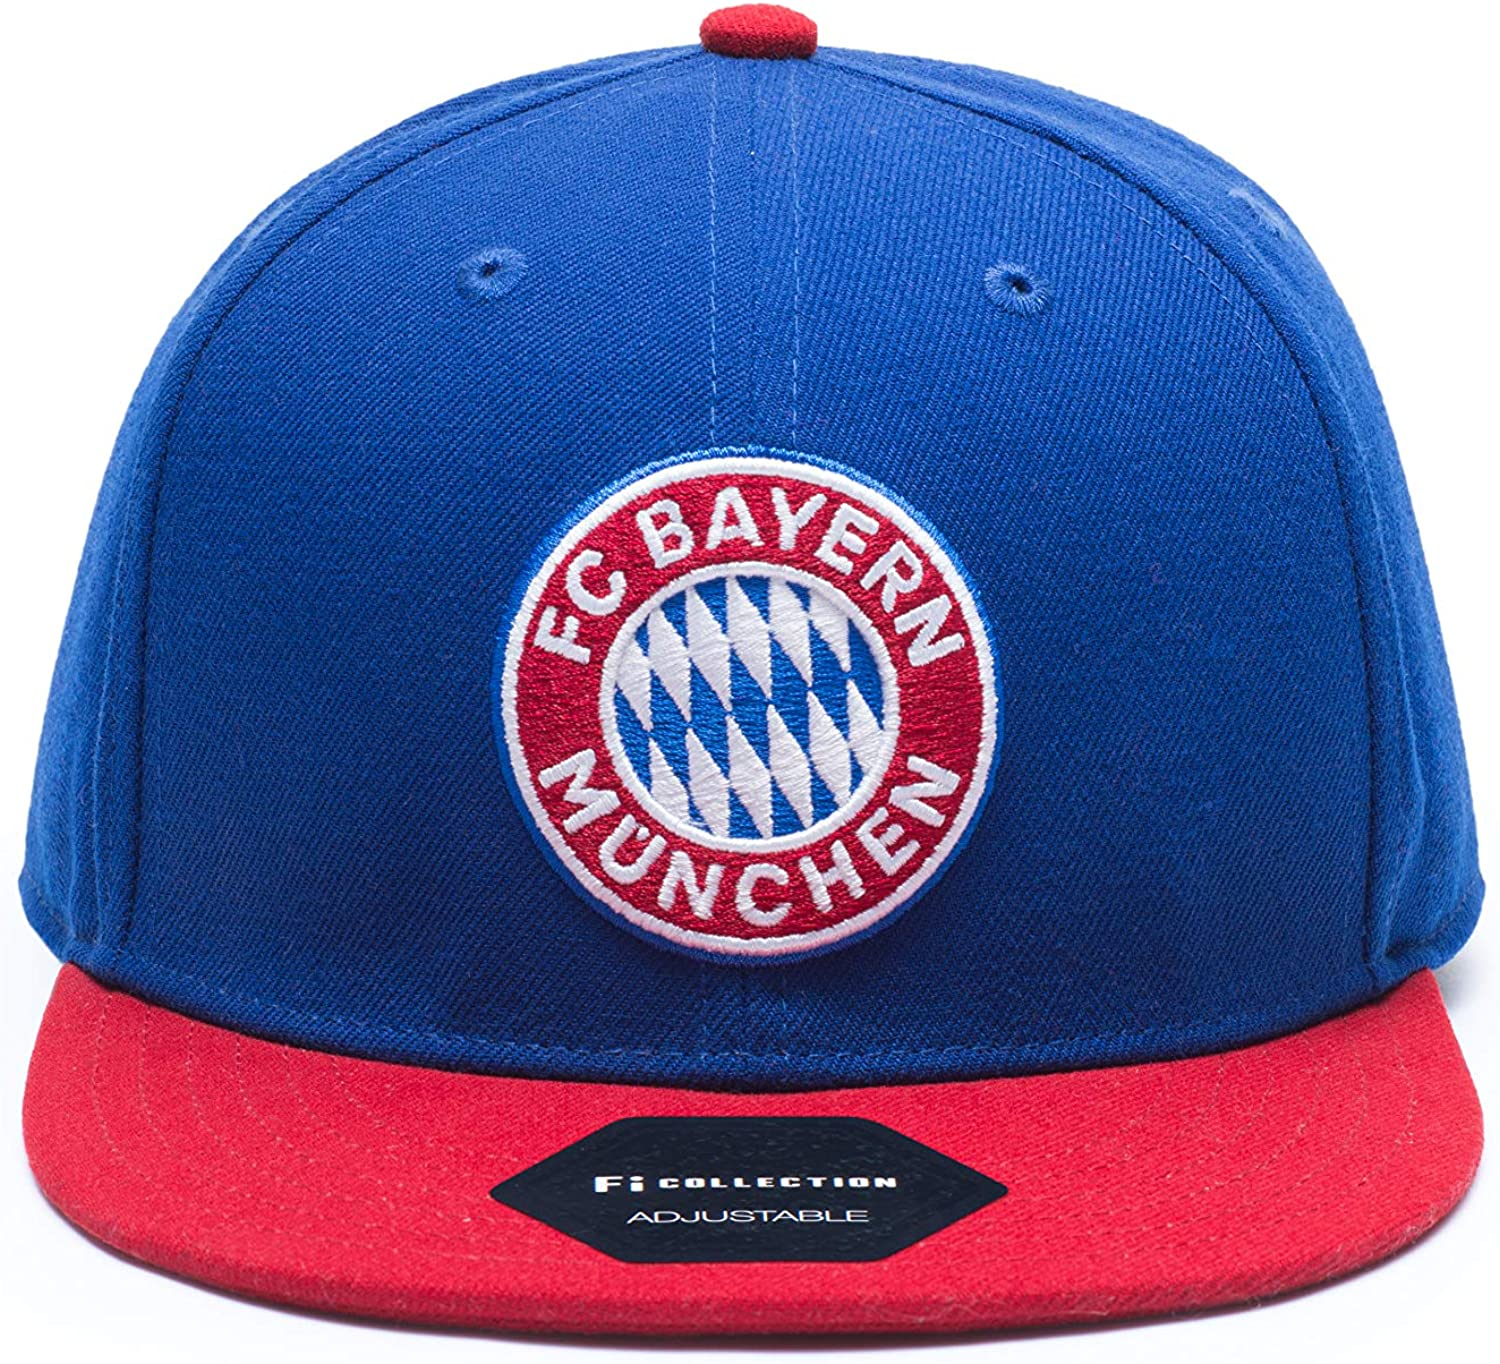 Fi Collection Bayern Munich Team Snapback Hat Blue/Red